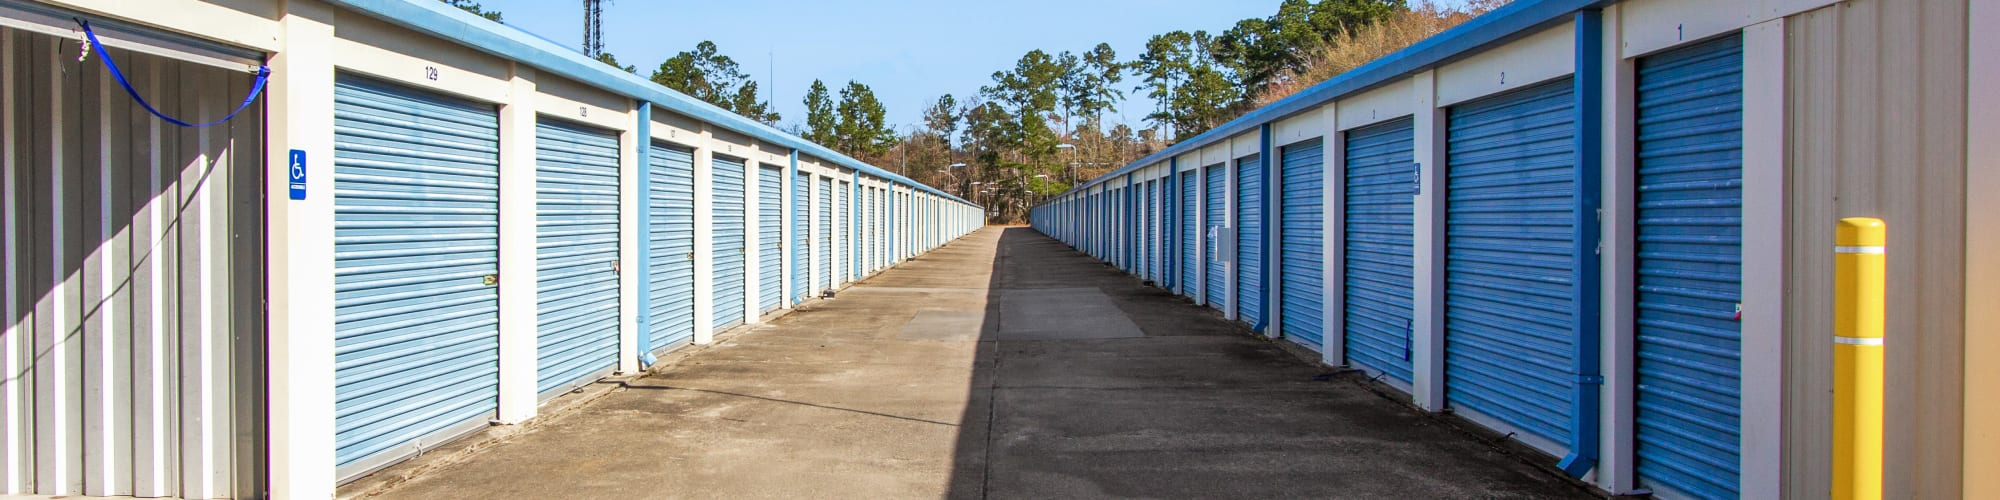 Kiosk at Global Self Storage in Summerville, South Carolina